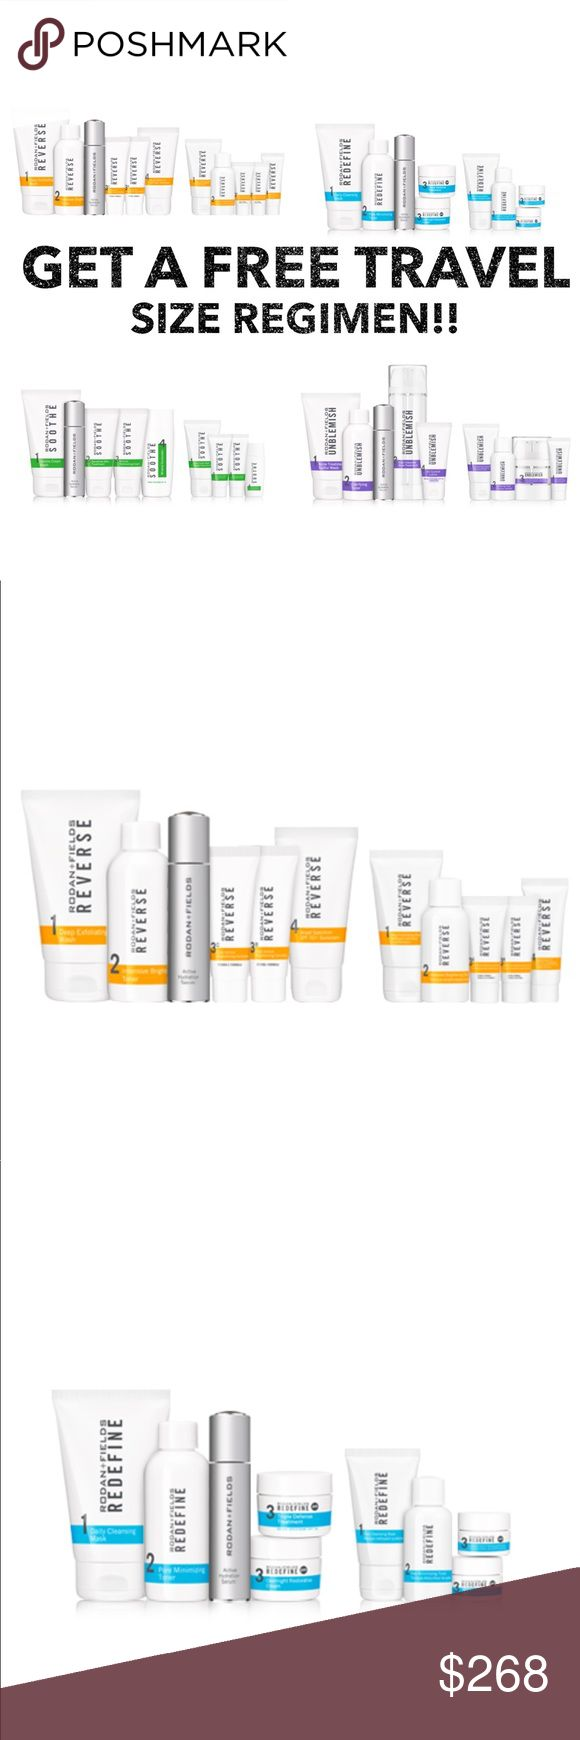 FREE Travel Size Regimen!!! Buy Any SkinCare Regimen + New Active Hydration Serum And Get A FREE Travel Size Regimen!!! For A Limited Time Only! Give Me Your Email And I'll Send You A Special Offer To Order The #1 Premium Anti-Aging SkinCare Brand In The US and Canada!! Rodan+Fields Makeup Face Primer